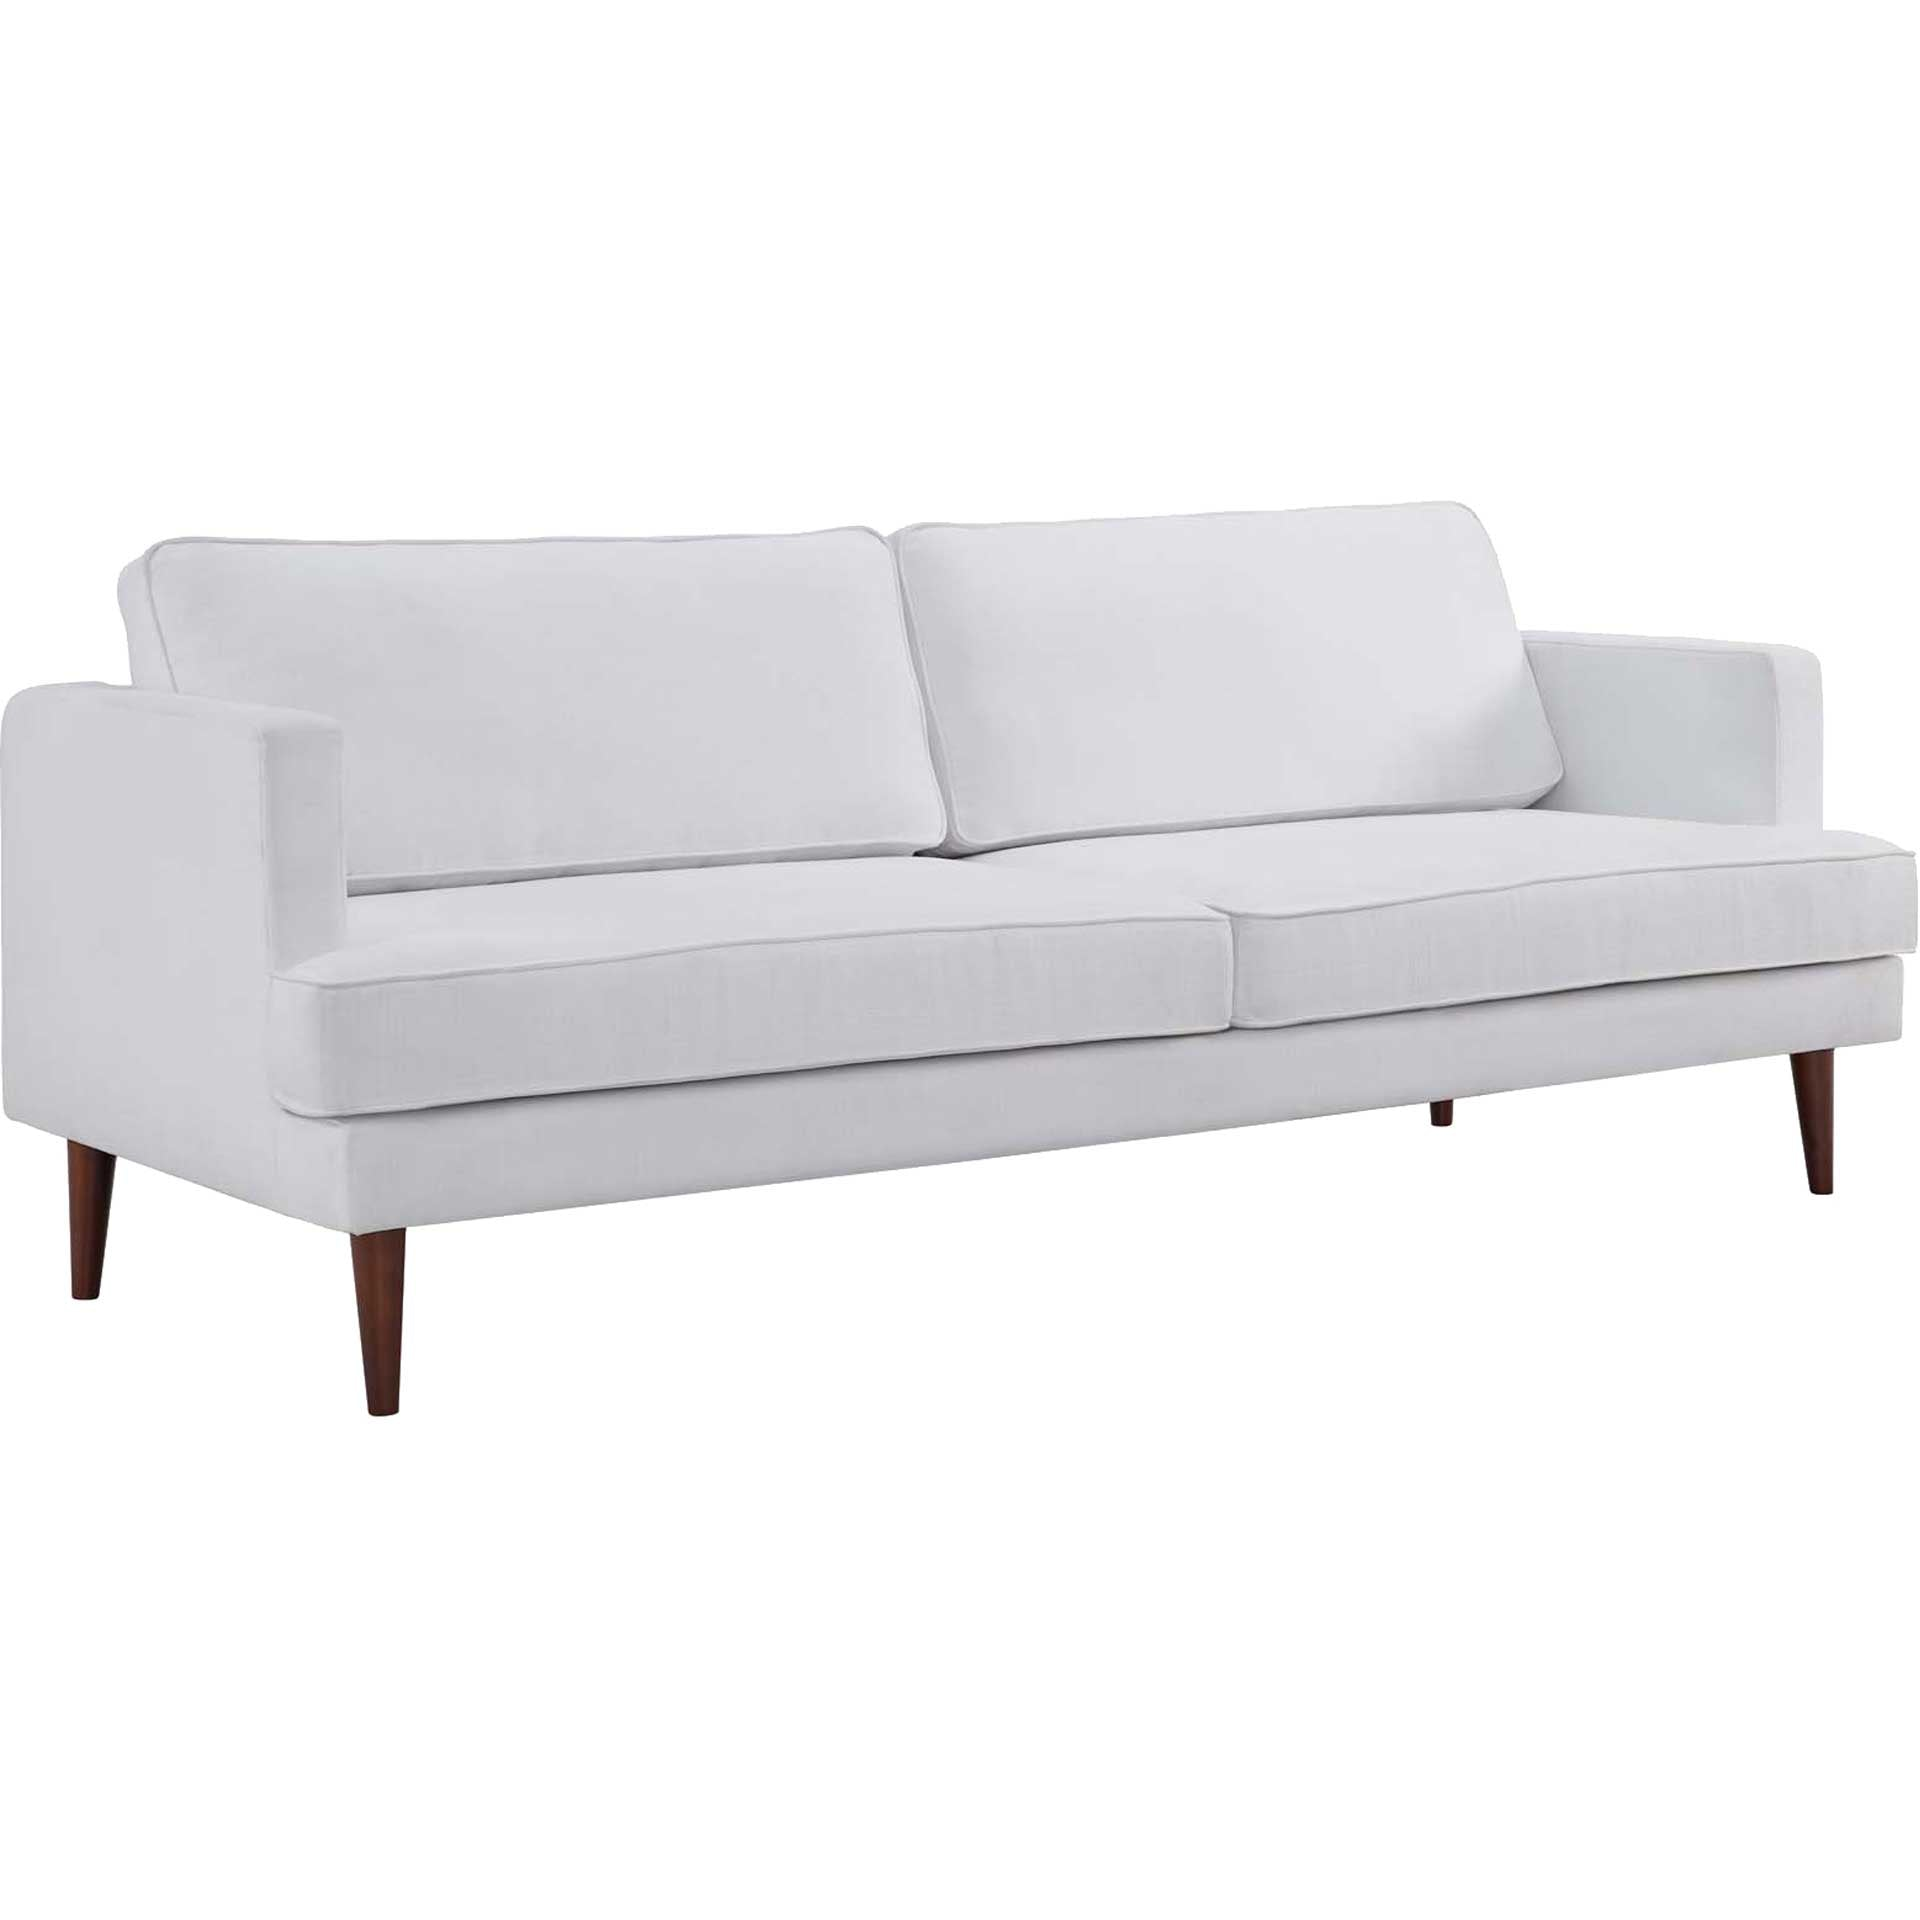 Aisley Upholstered Fabric Sofa White